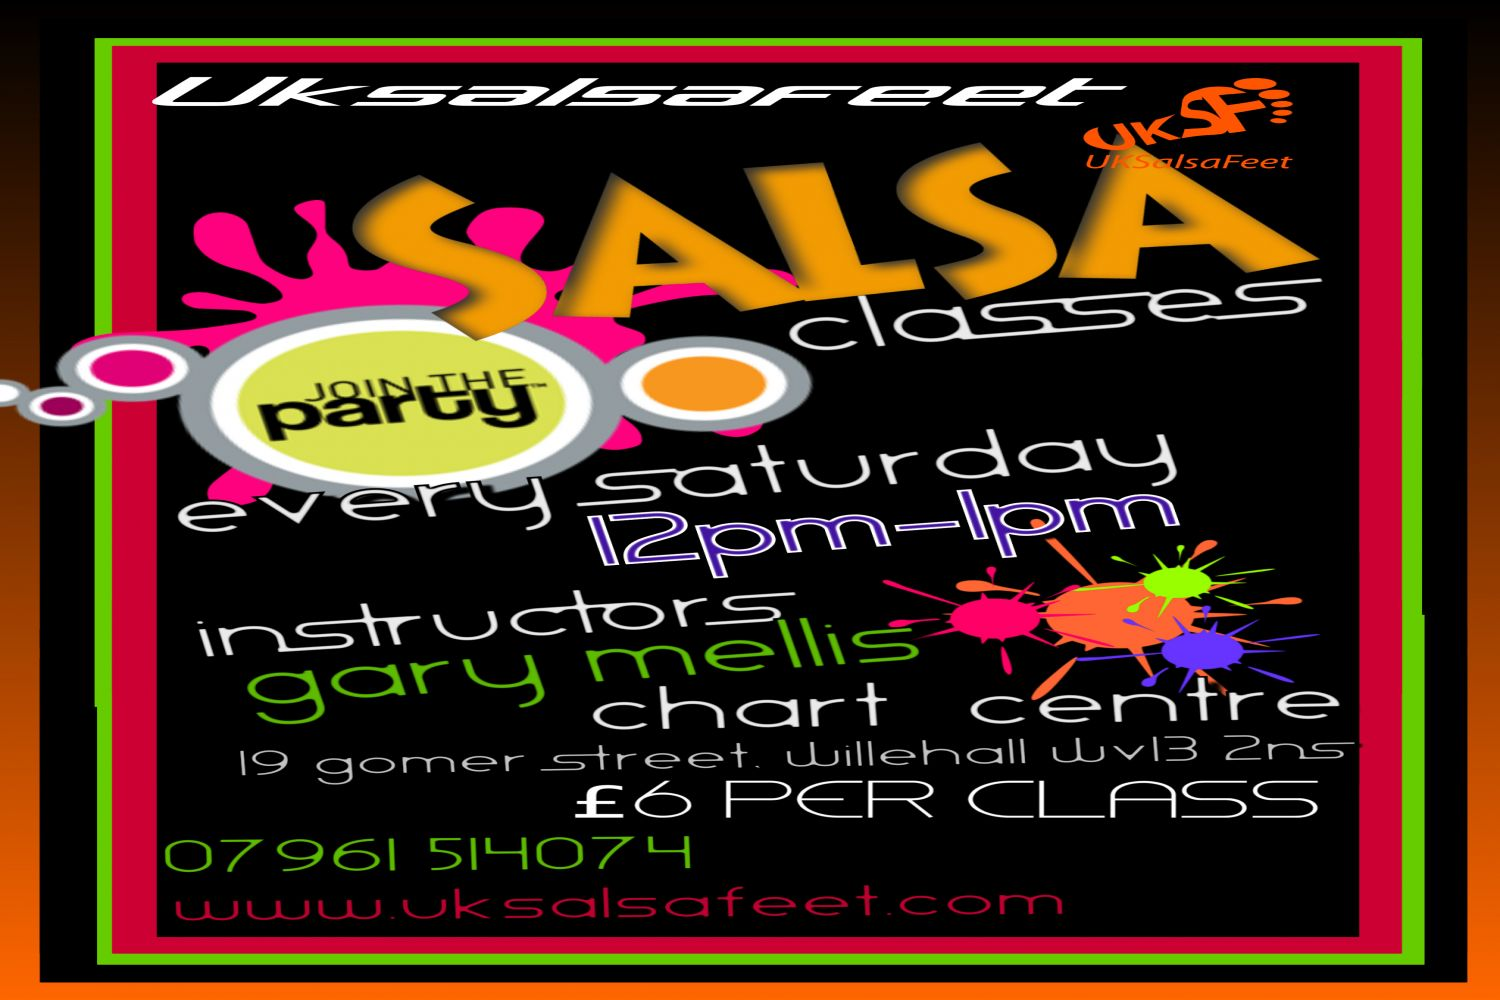 Saturday afternoon salsa dance classes